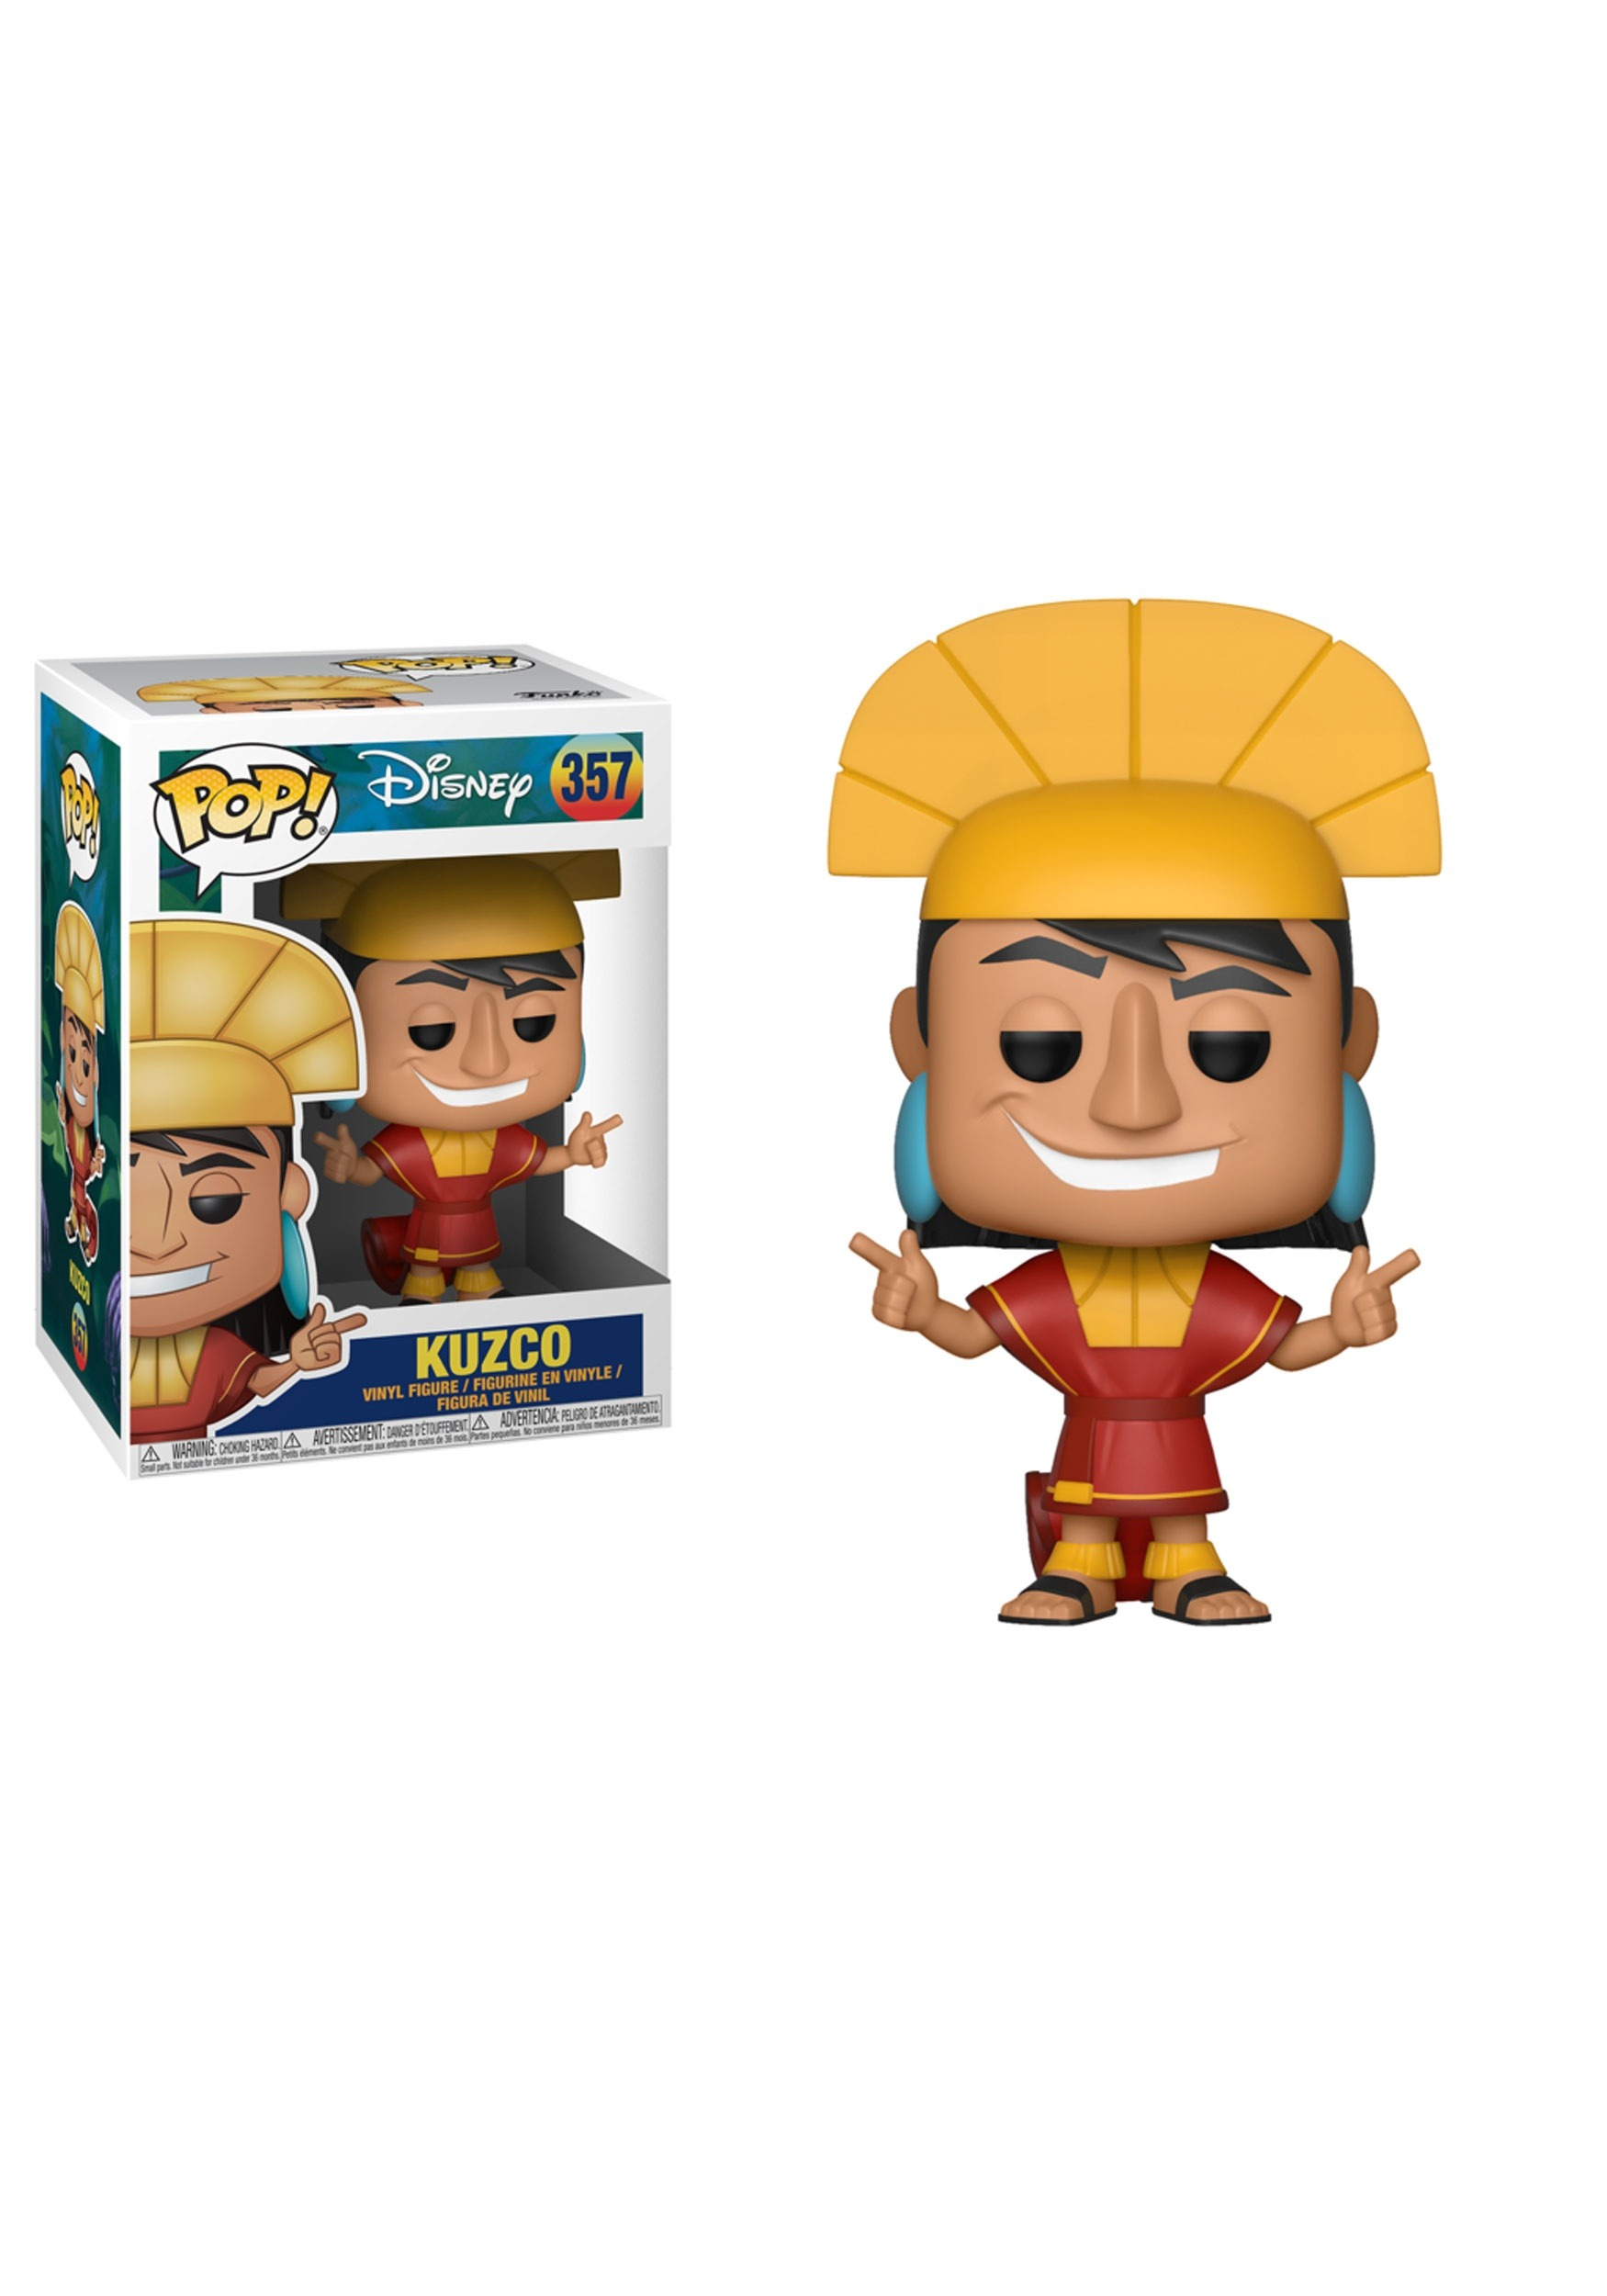 Pop Disney Emperor S New Groove Kuzco Vinyl Figure